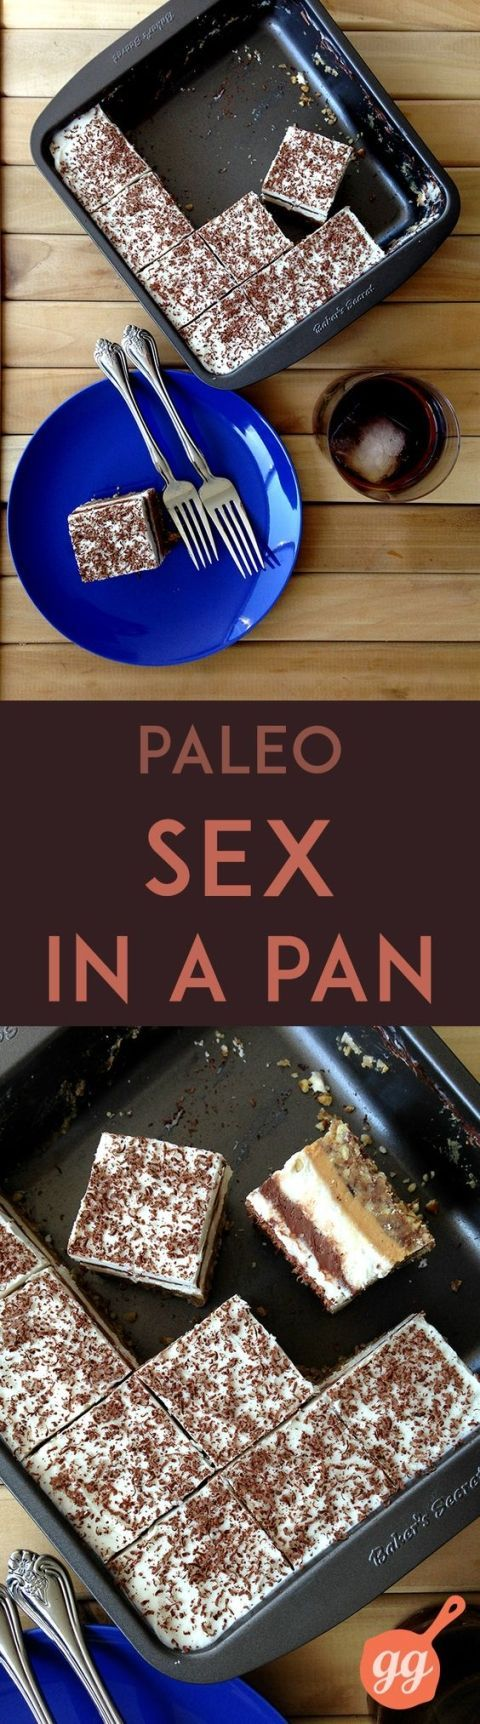 Paleo Sex in a Pan Recipe plus 24 more of the most popular pinned Paleo recipes: